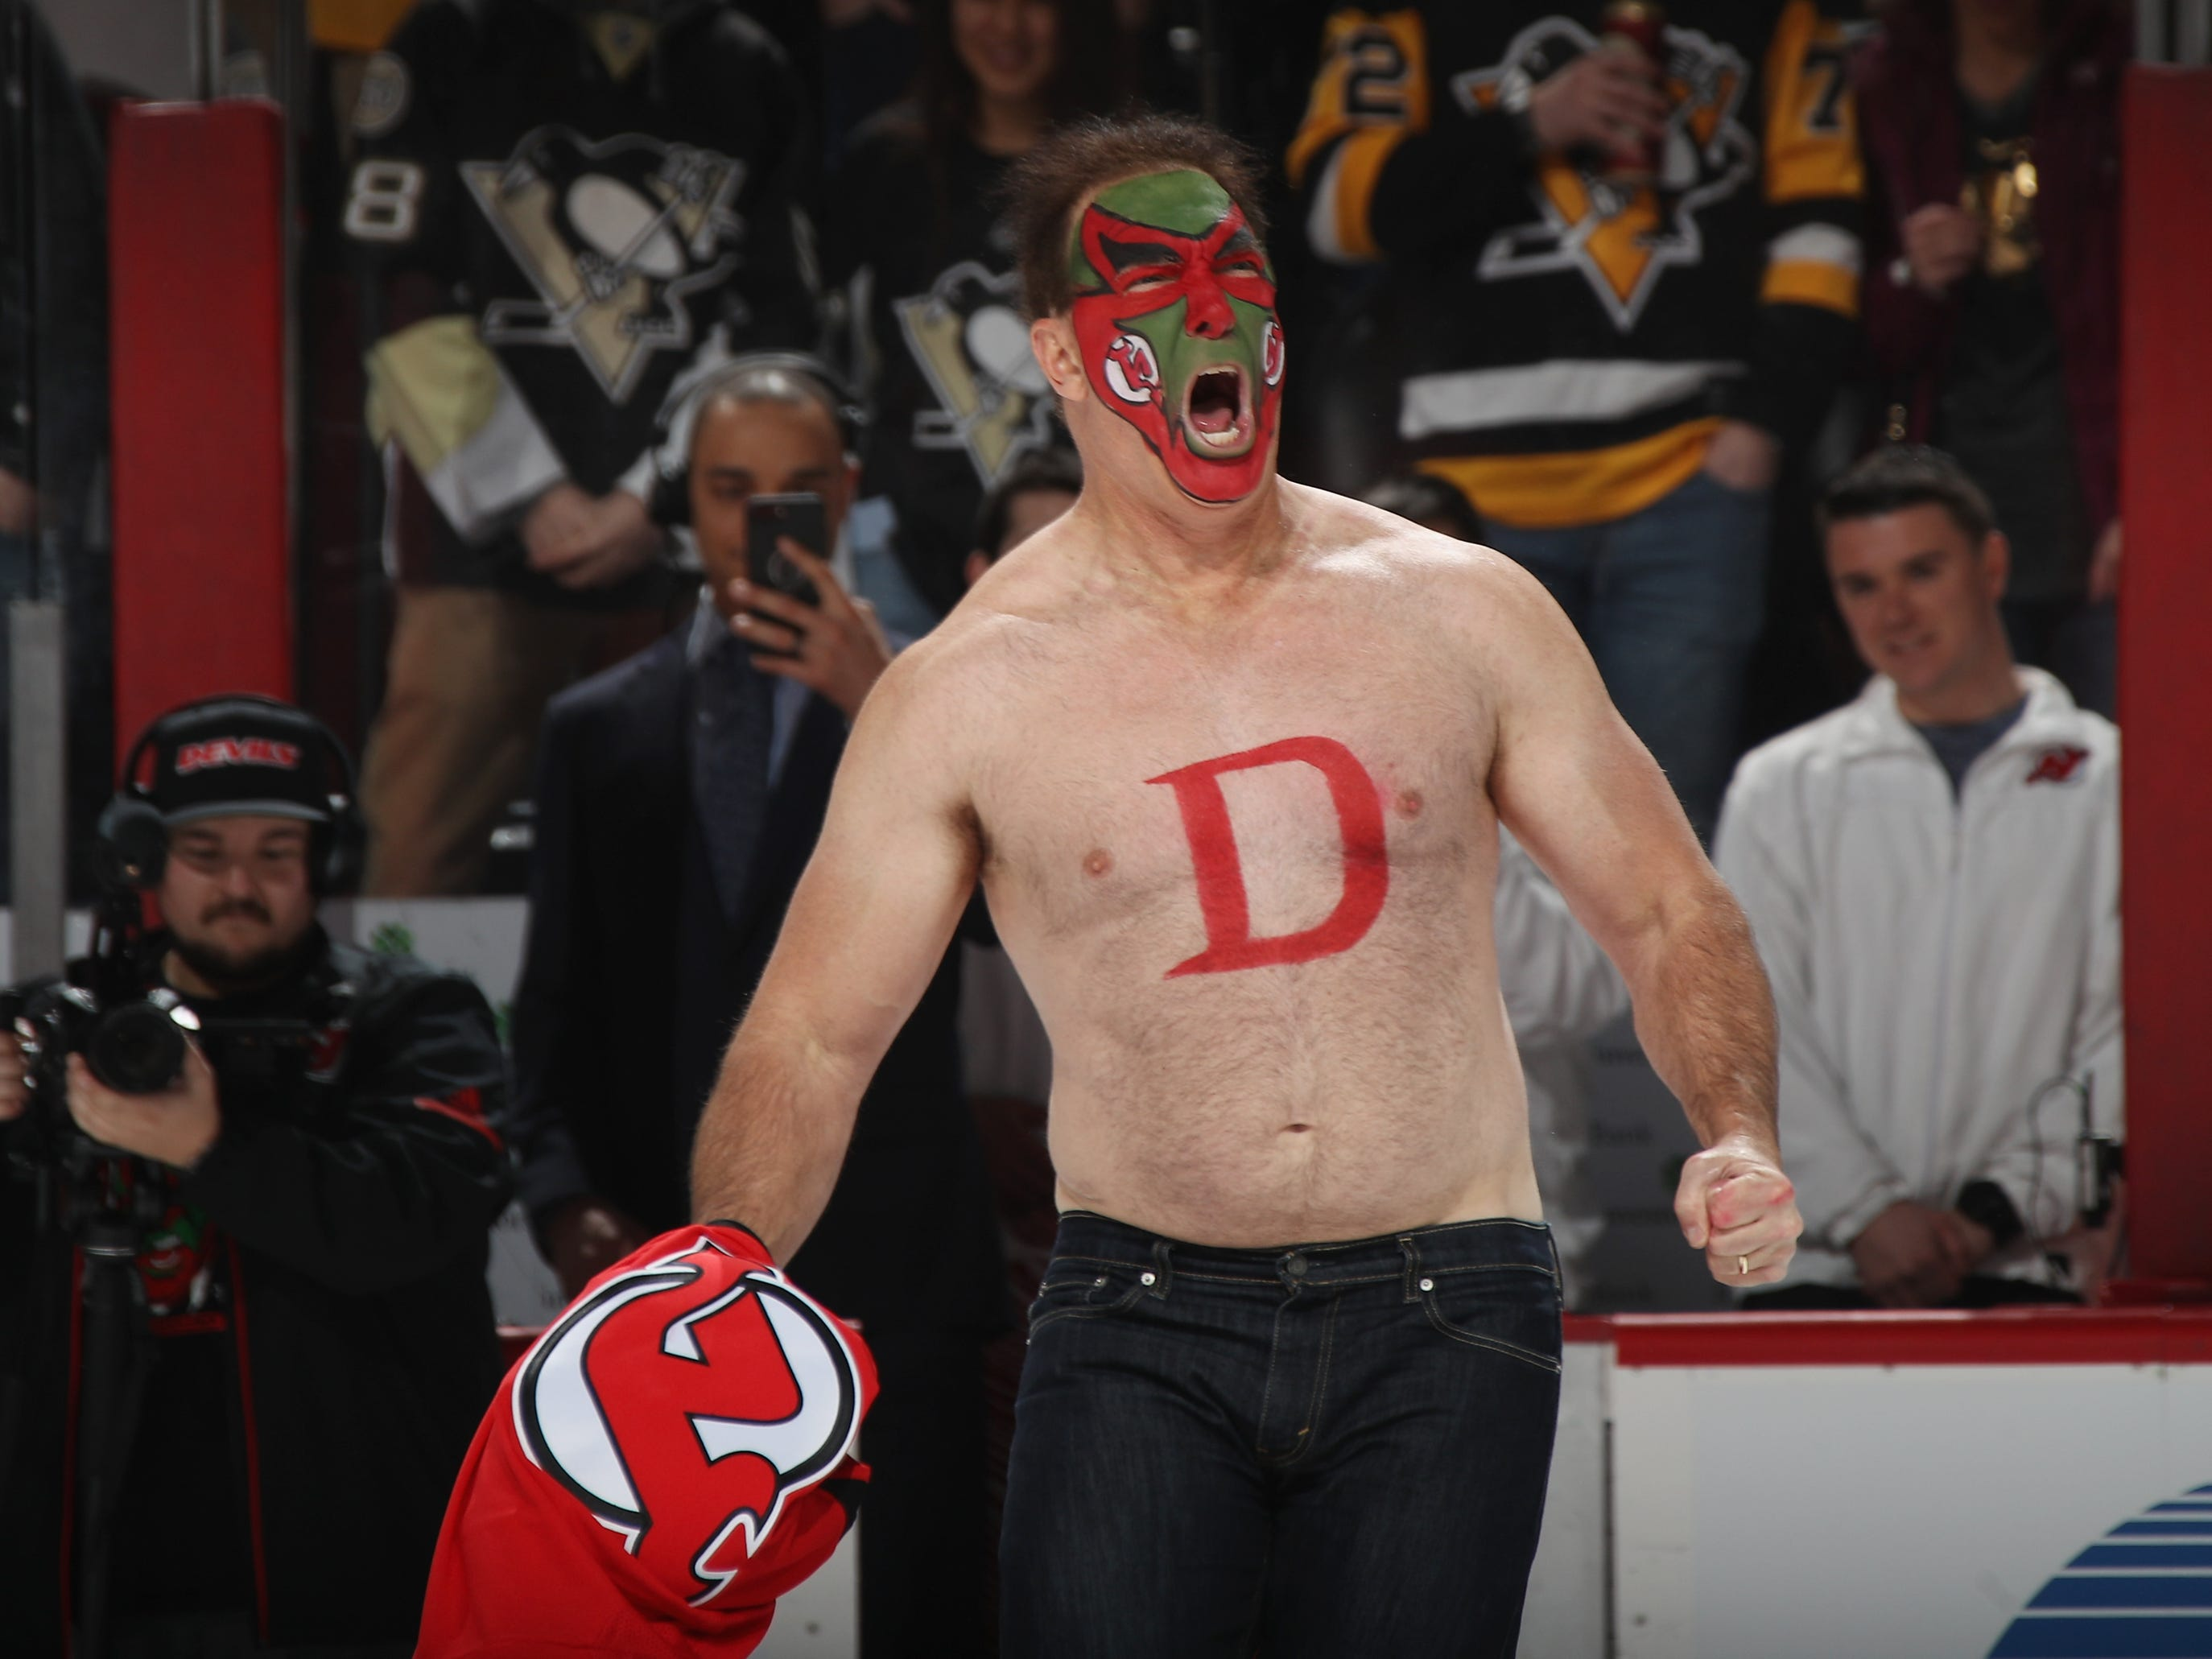 """Patrick Warburton who played the part of David Puddy on the TV show """"Seinfeld"""" walks out onto the ice to drop the puck between Andy Greene #6 of the New Jersey Devils and Sidney Crosby #87 of the Pittsburgh Penguins at the Prudential Center on February 19, 2019 in Newark, New Jersey."""